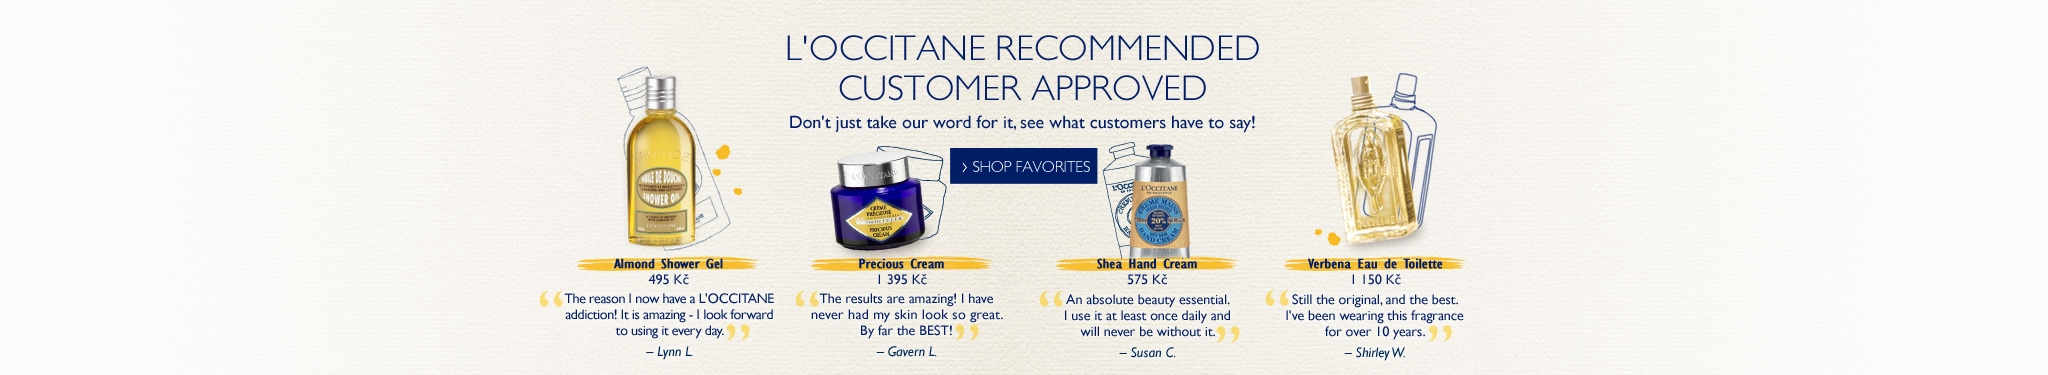 L'Occitane recommended customers approved